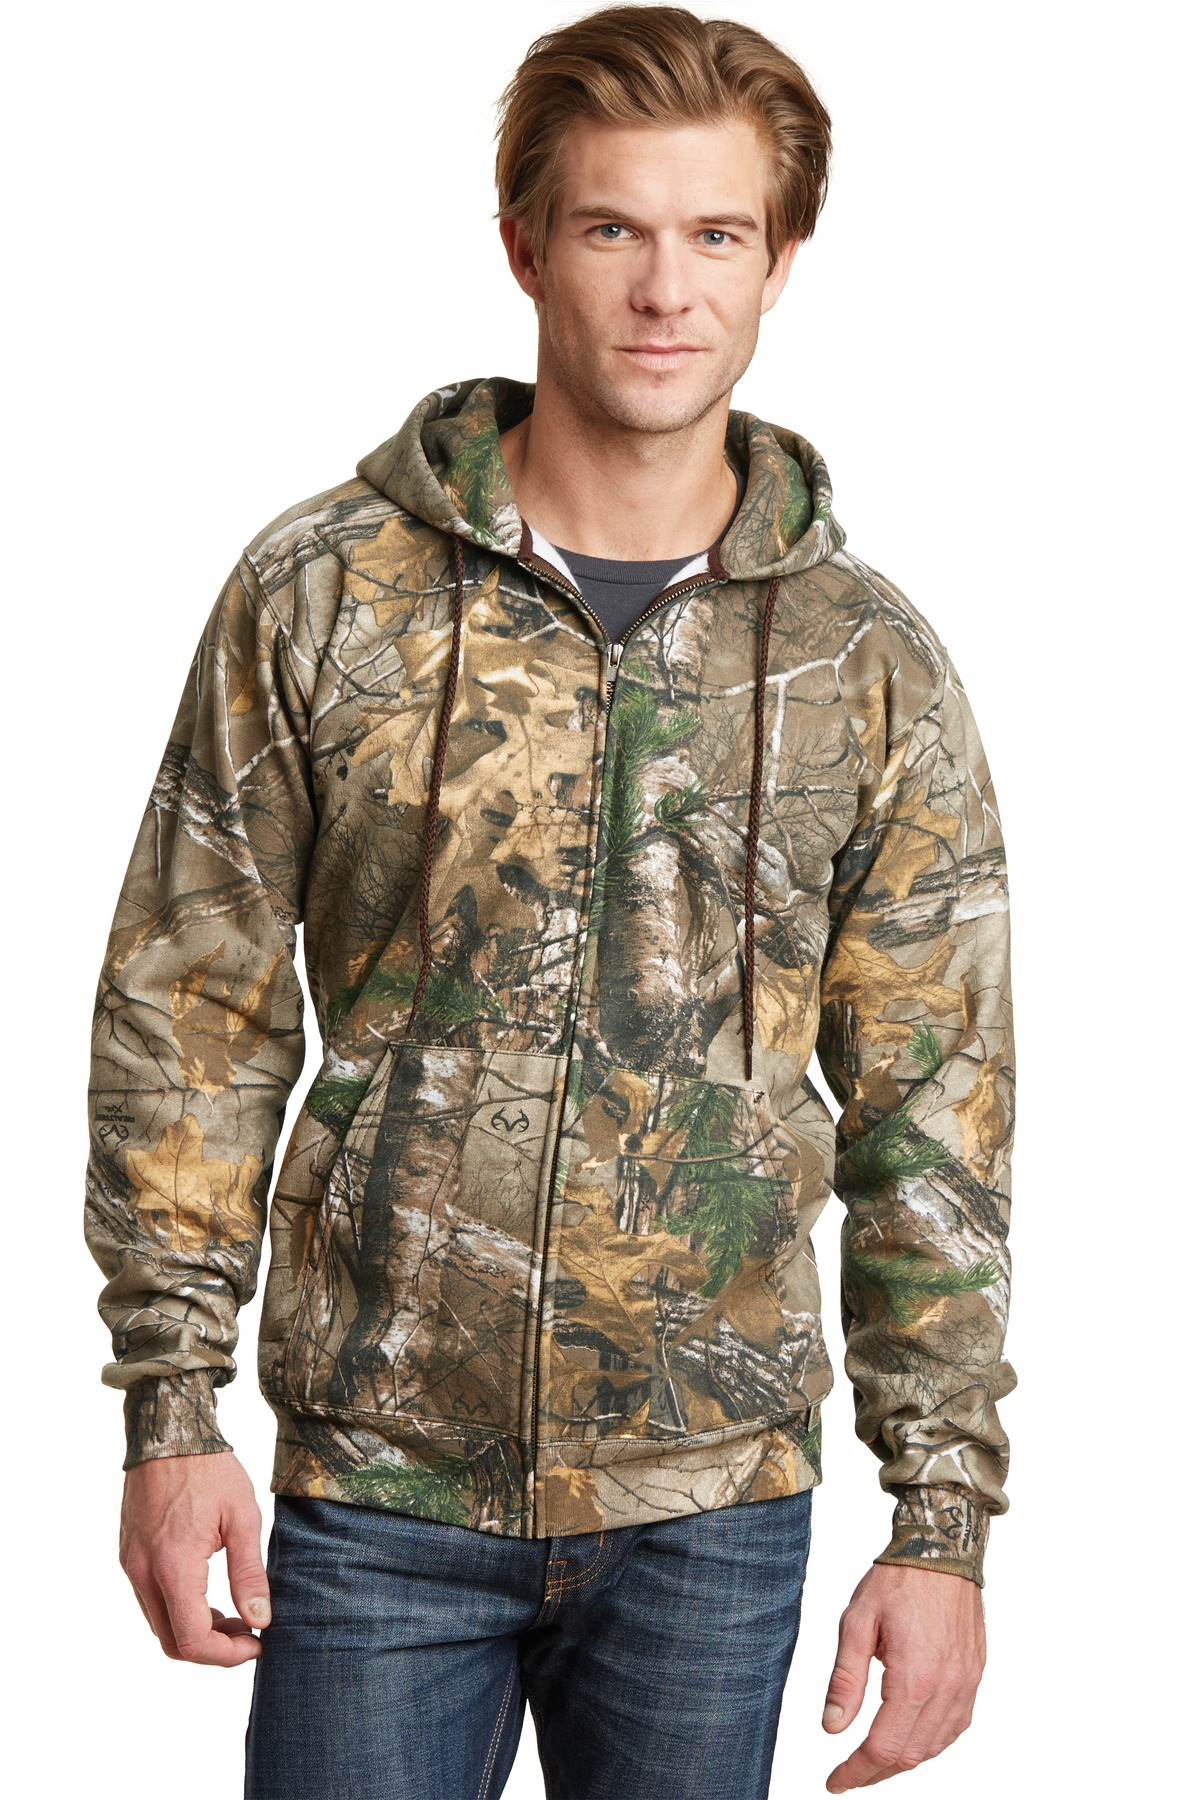 Russell Outdoors ™  Realtree ®  Full-Zip Hooded Sweatshirt. RO78ZH - Realtree Xtra